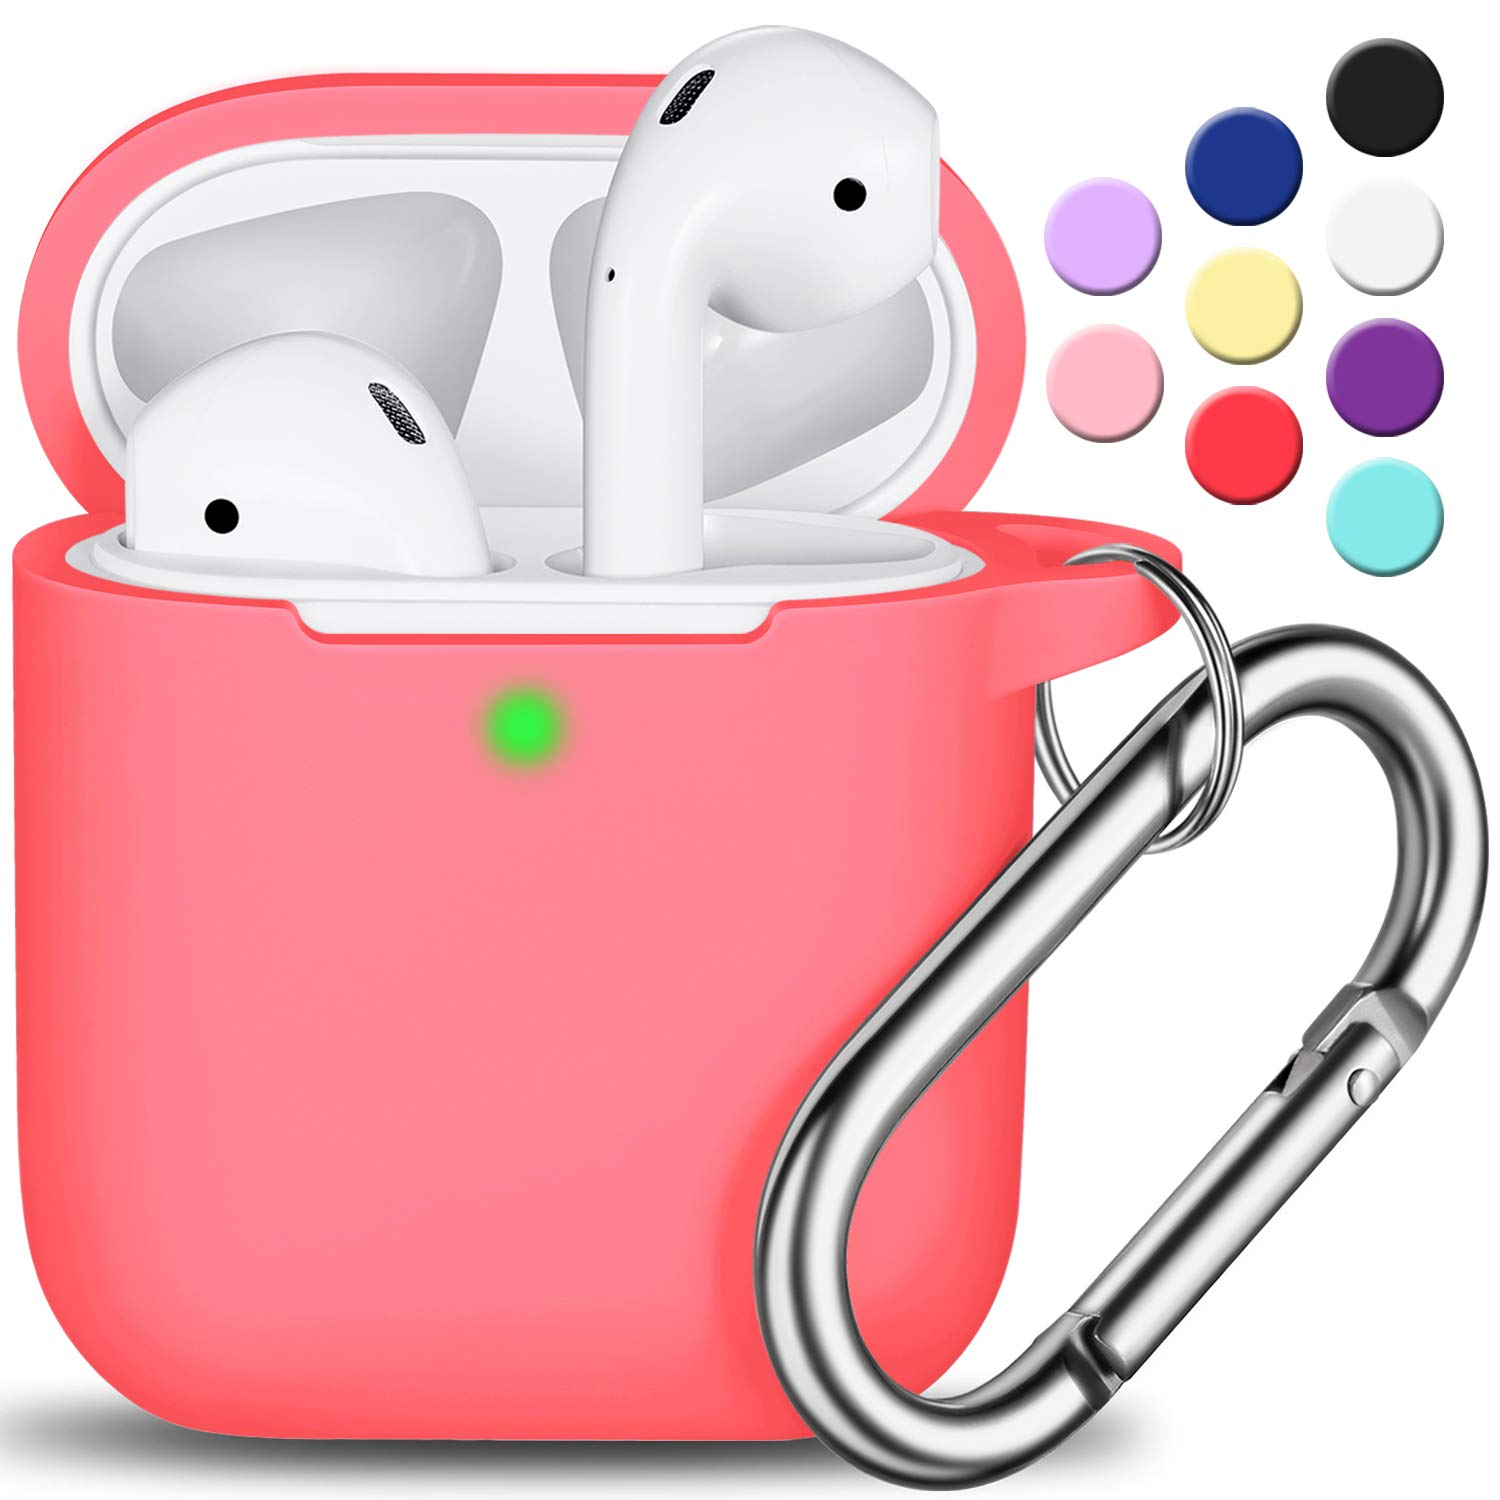 Full Protective Silicone AirPods Accessories Skin Cover for Women Girl with Apple AirPods Wireless Charging Case,Front LED Visible-Pink AirPods Case Cover with Keychain